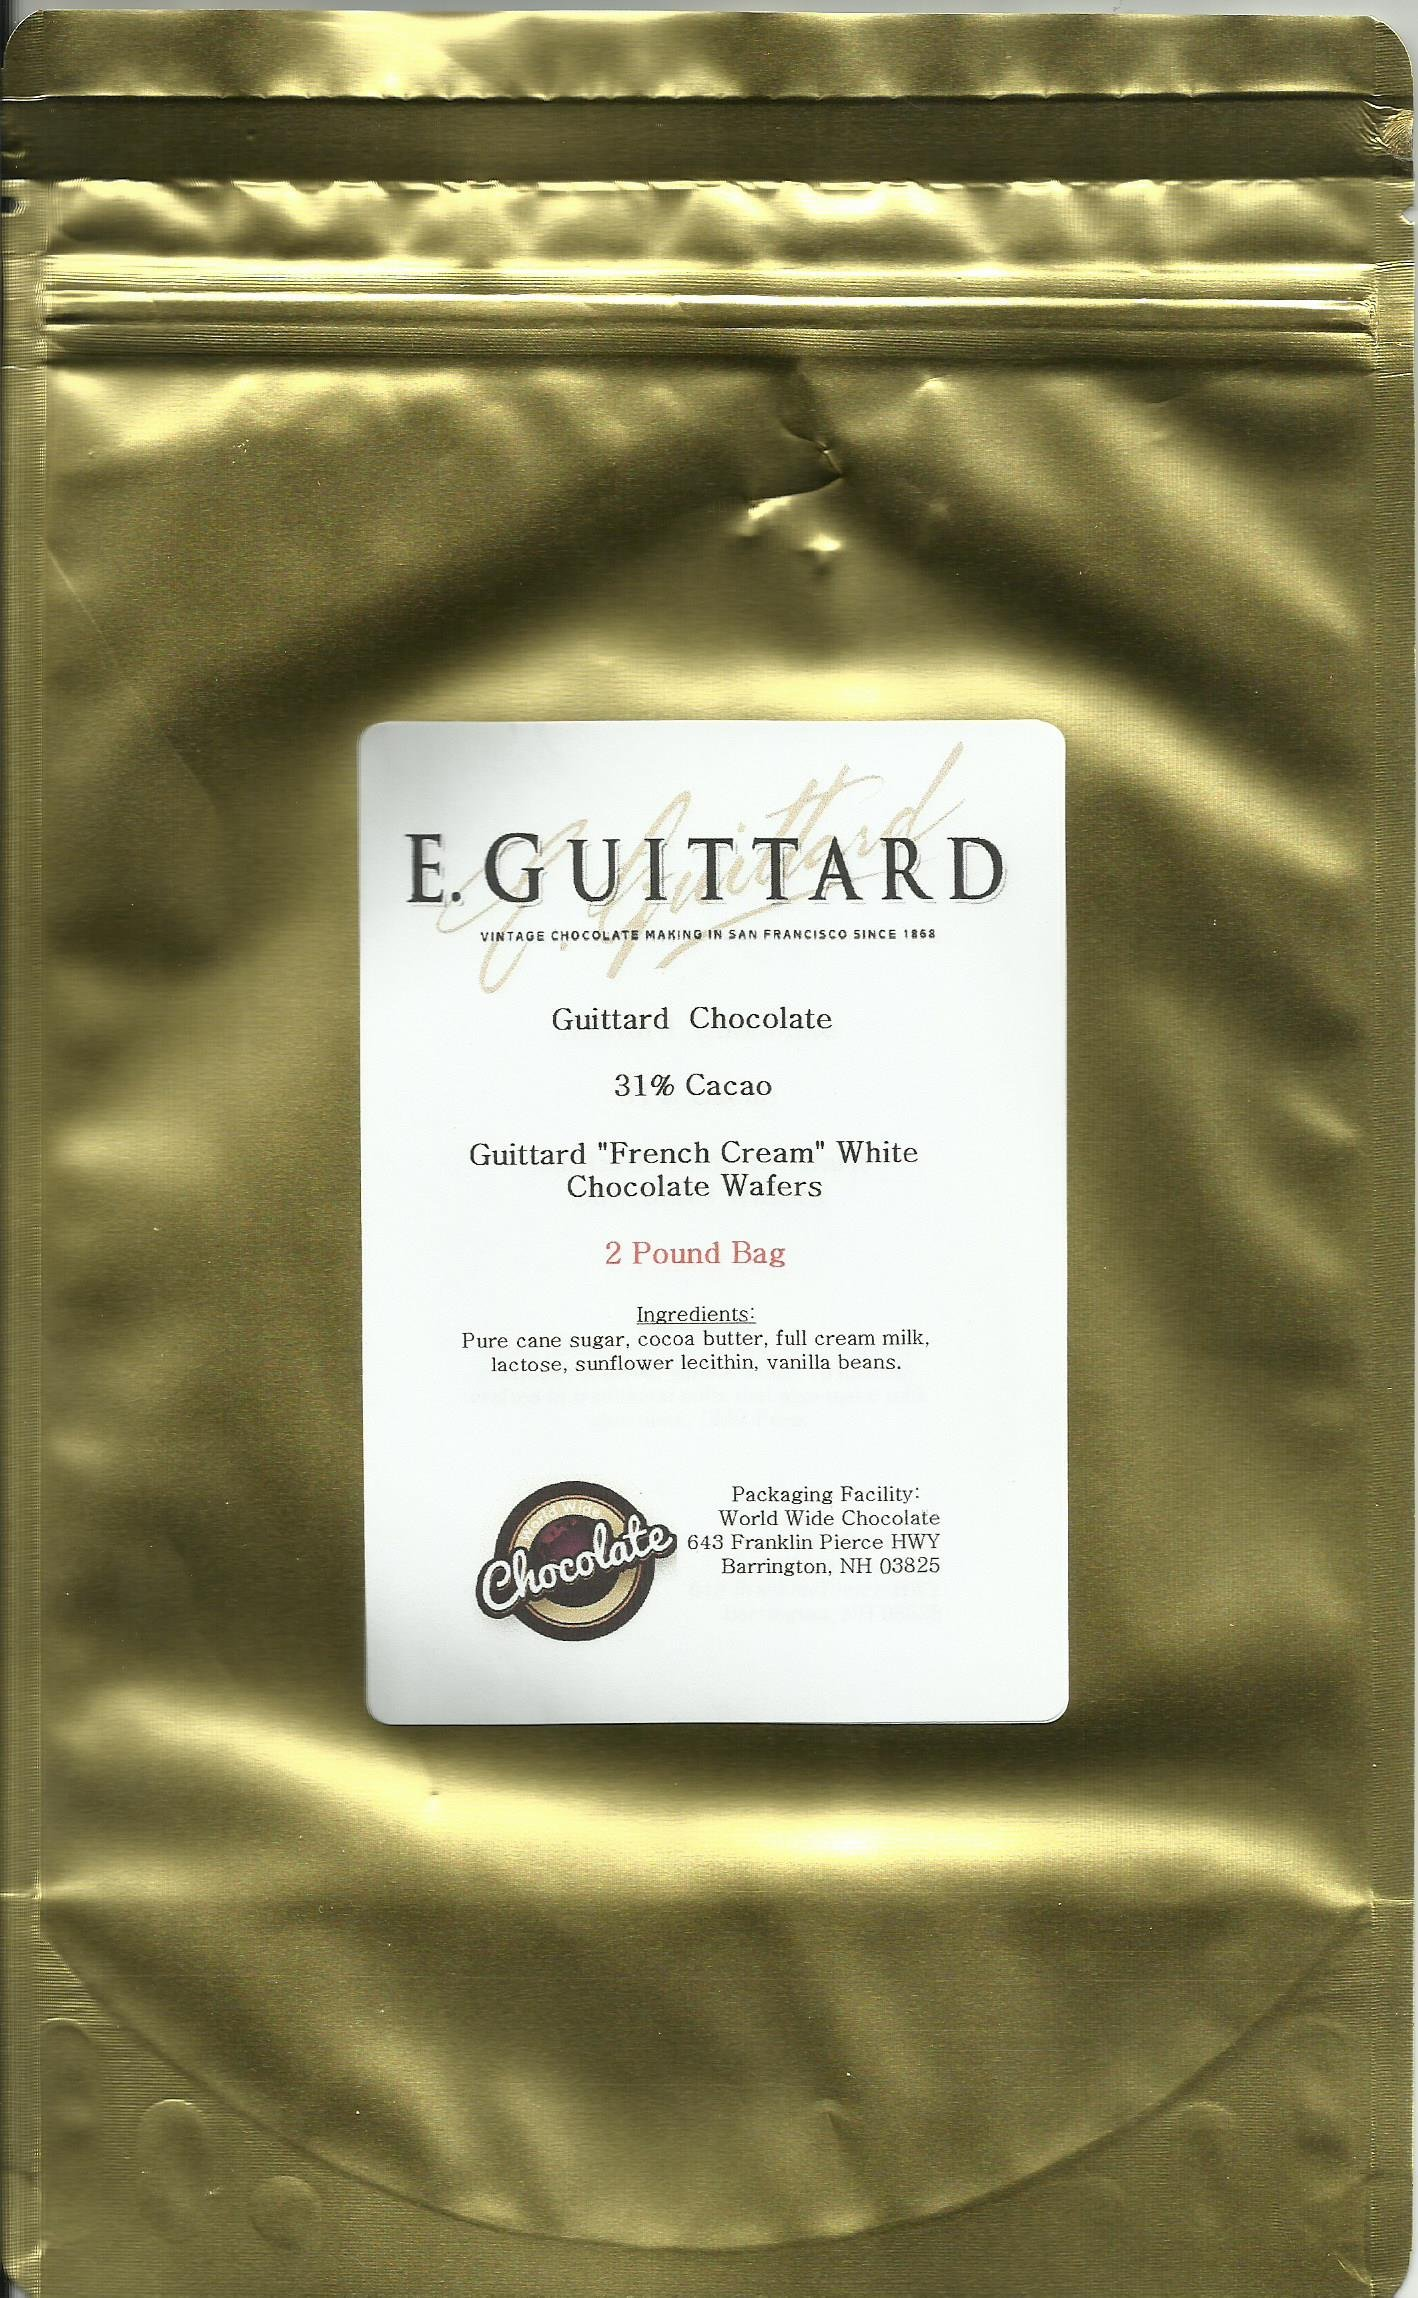 E. Guittard Chocolate - ''Creme Francaise'' (French Cream) White Chocolate Wafers for Baking and Eating, 31% Cocoa, Gold Bag, 2 Pounds